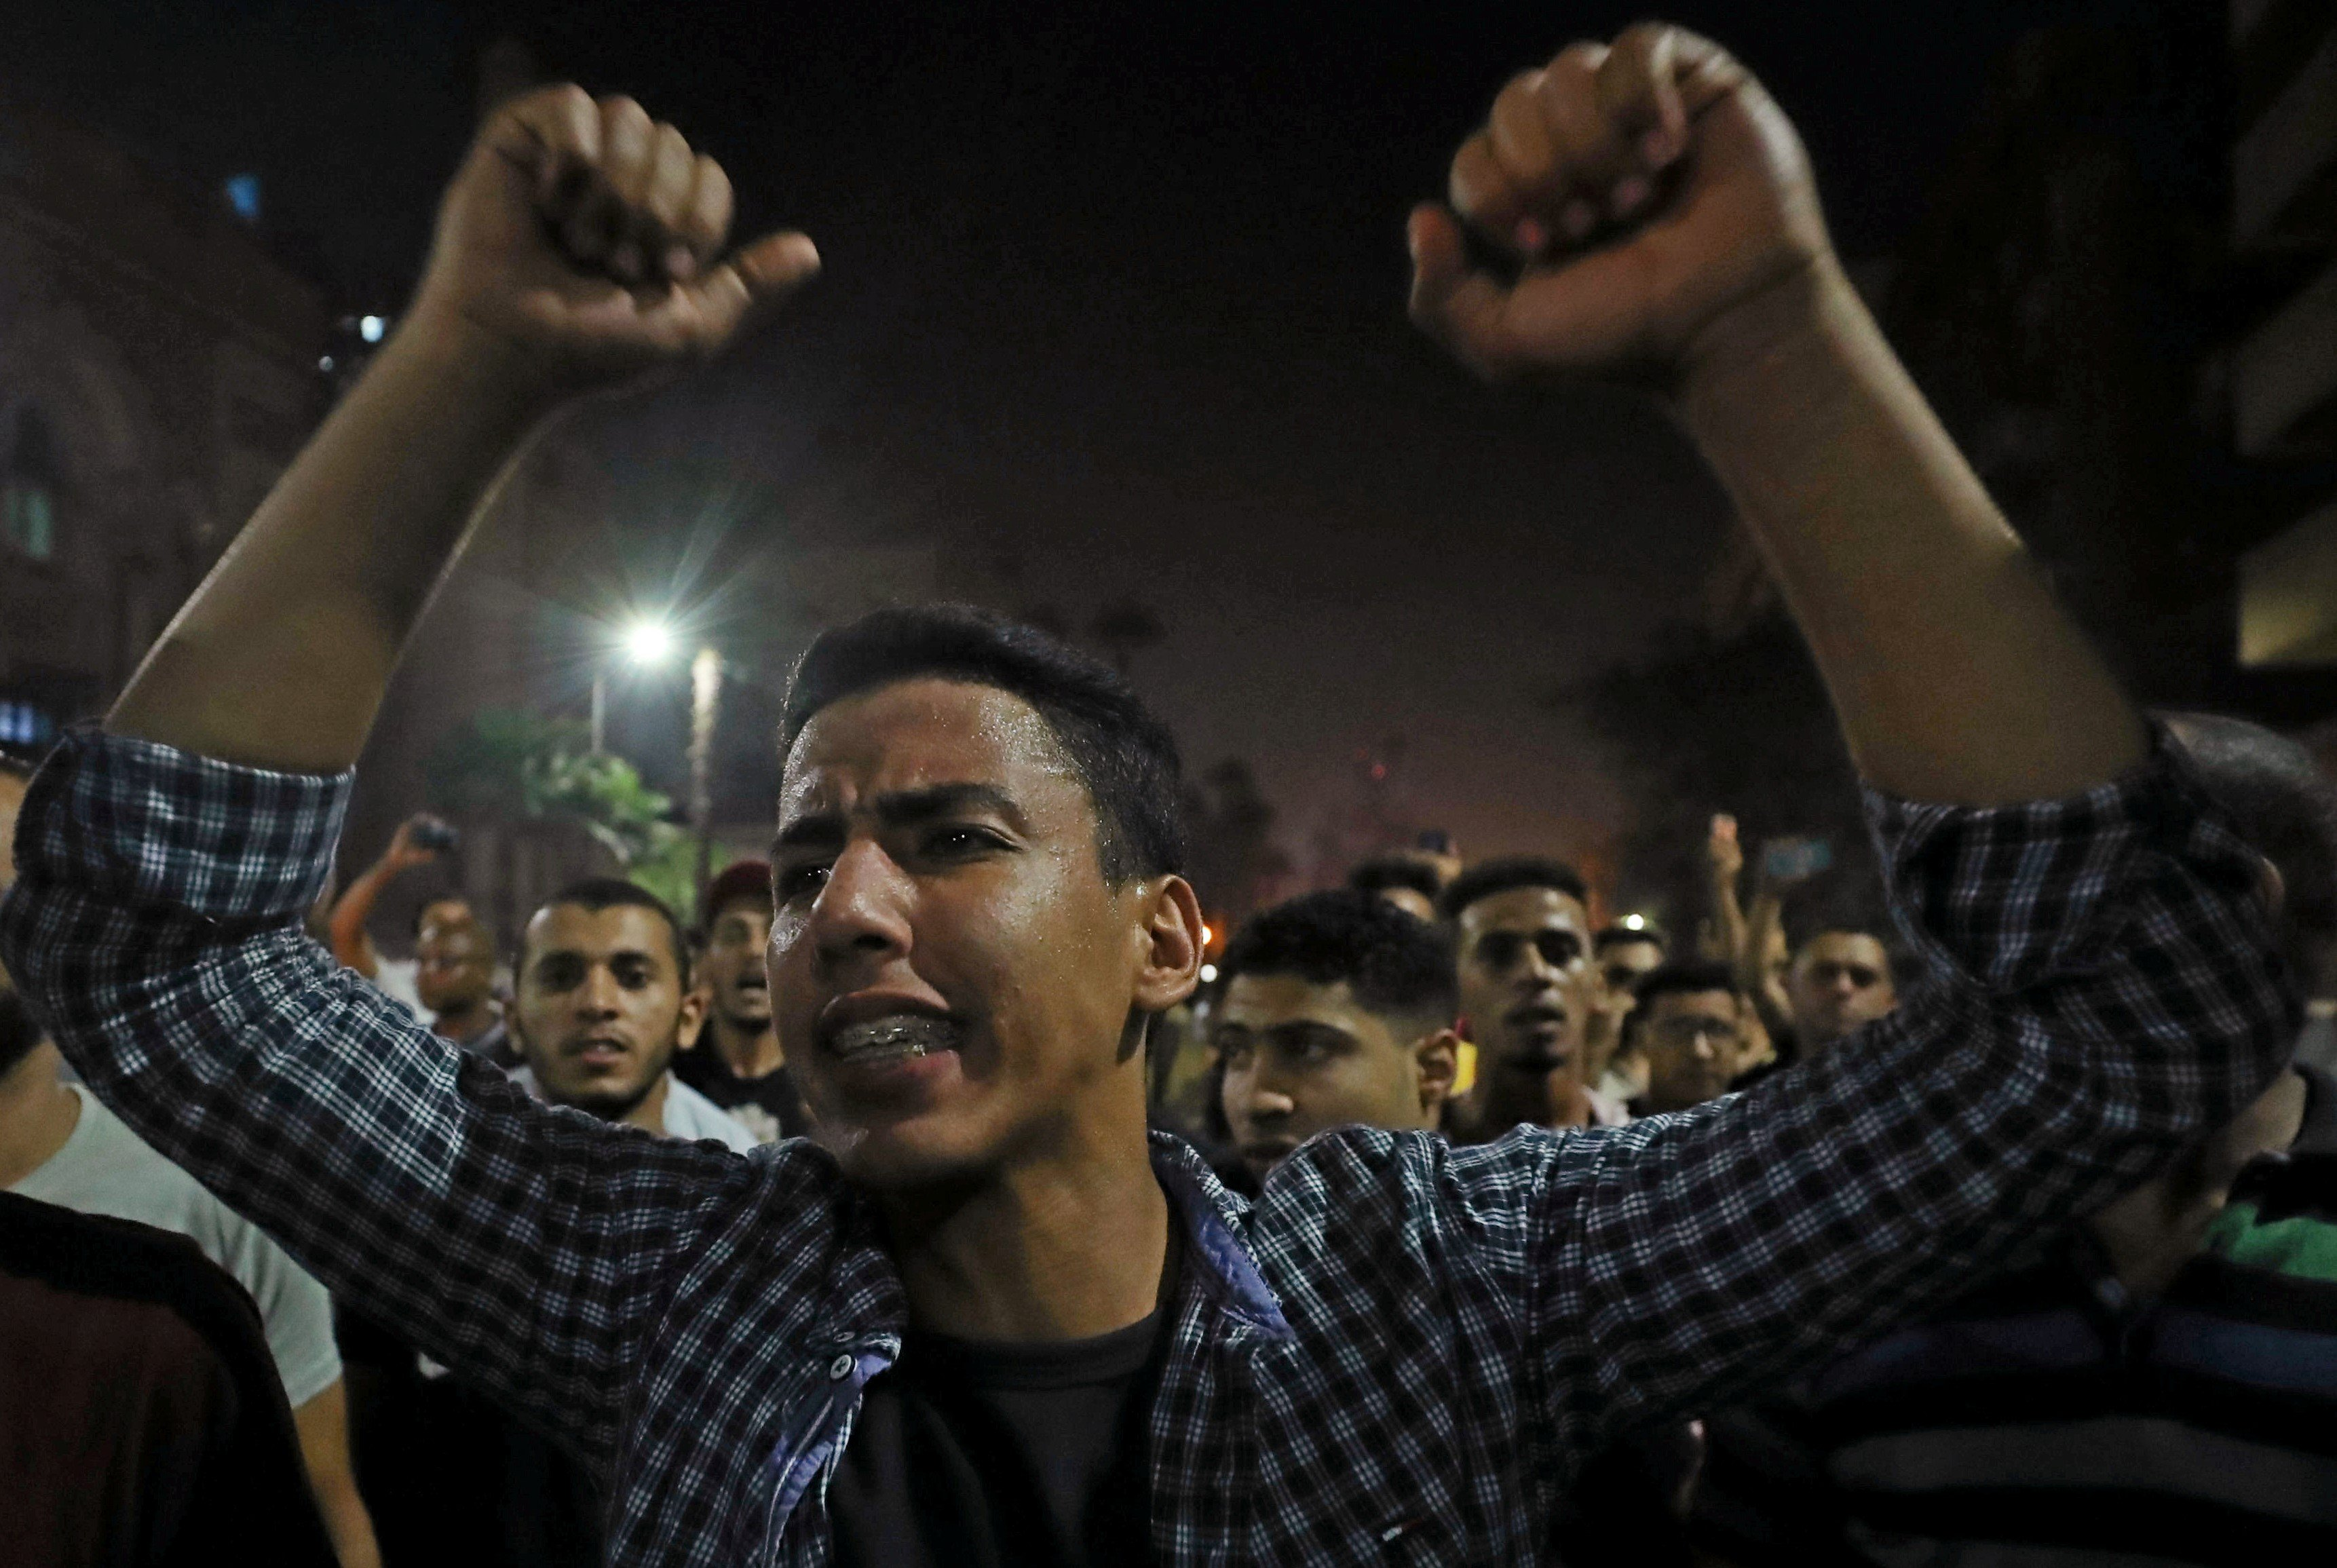 Small groups of protesters gather in central Cairo shouting anti-government slogans in Cairo, Egypt September 21, 2019